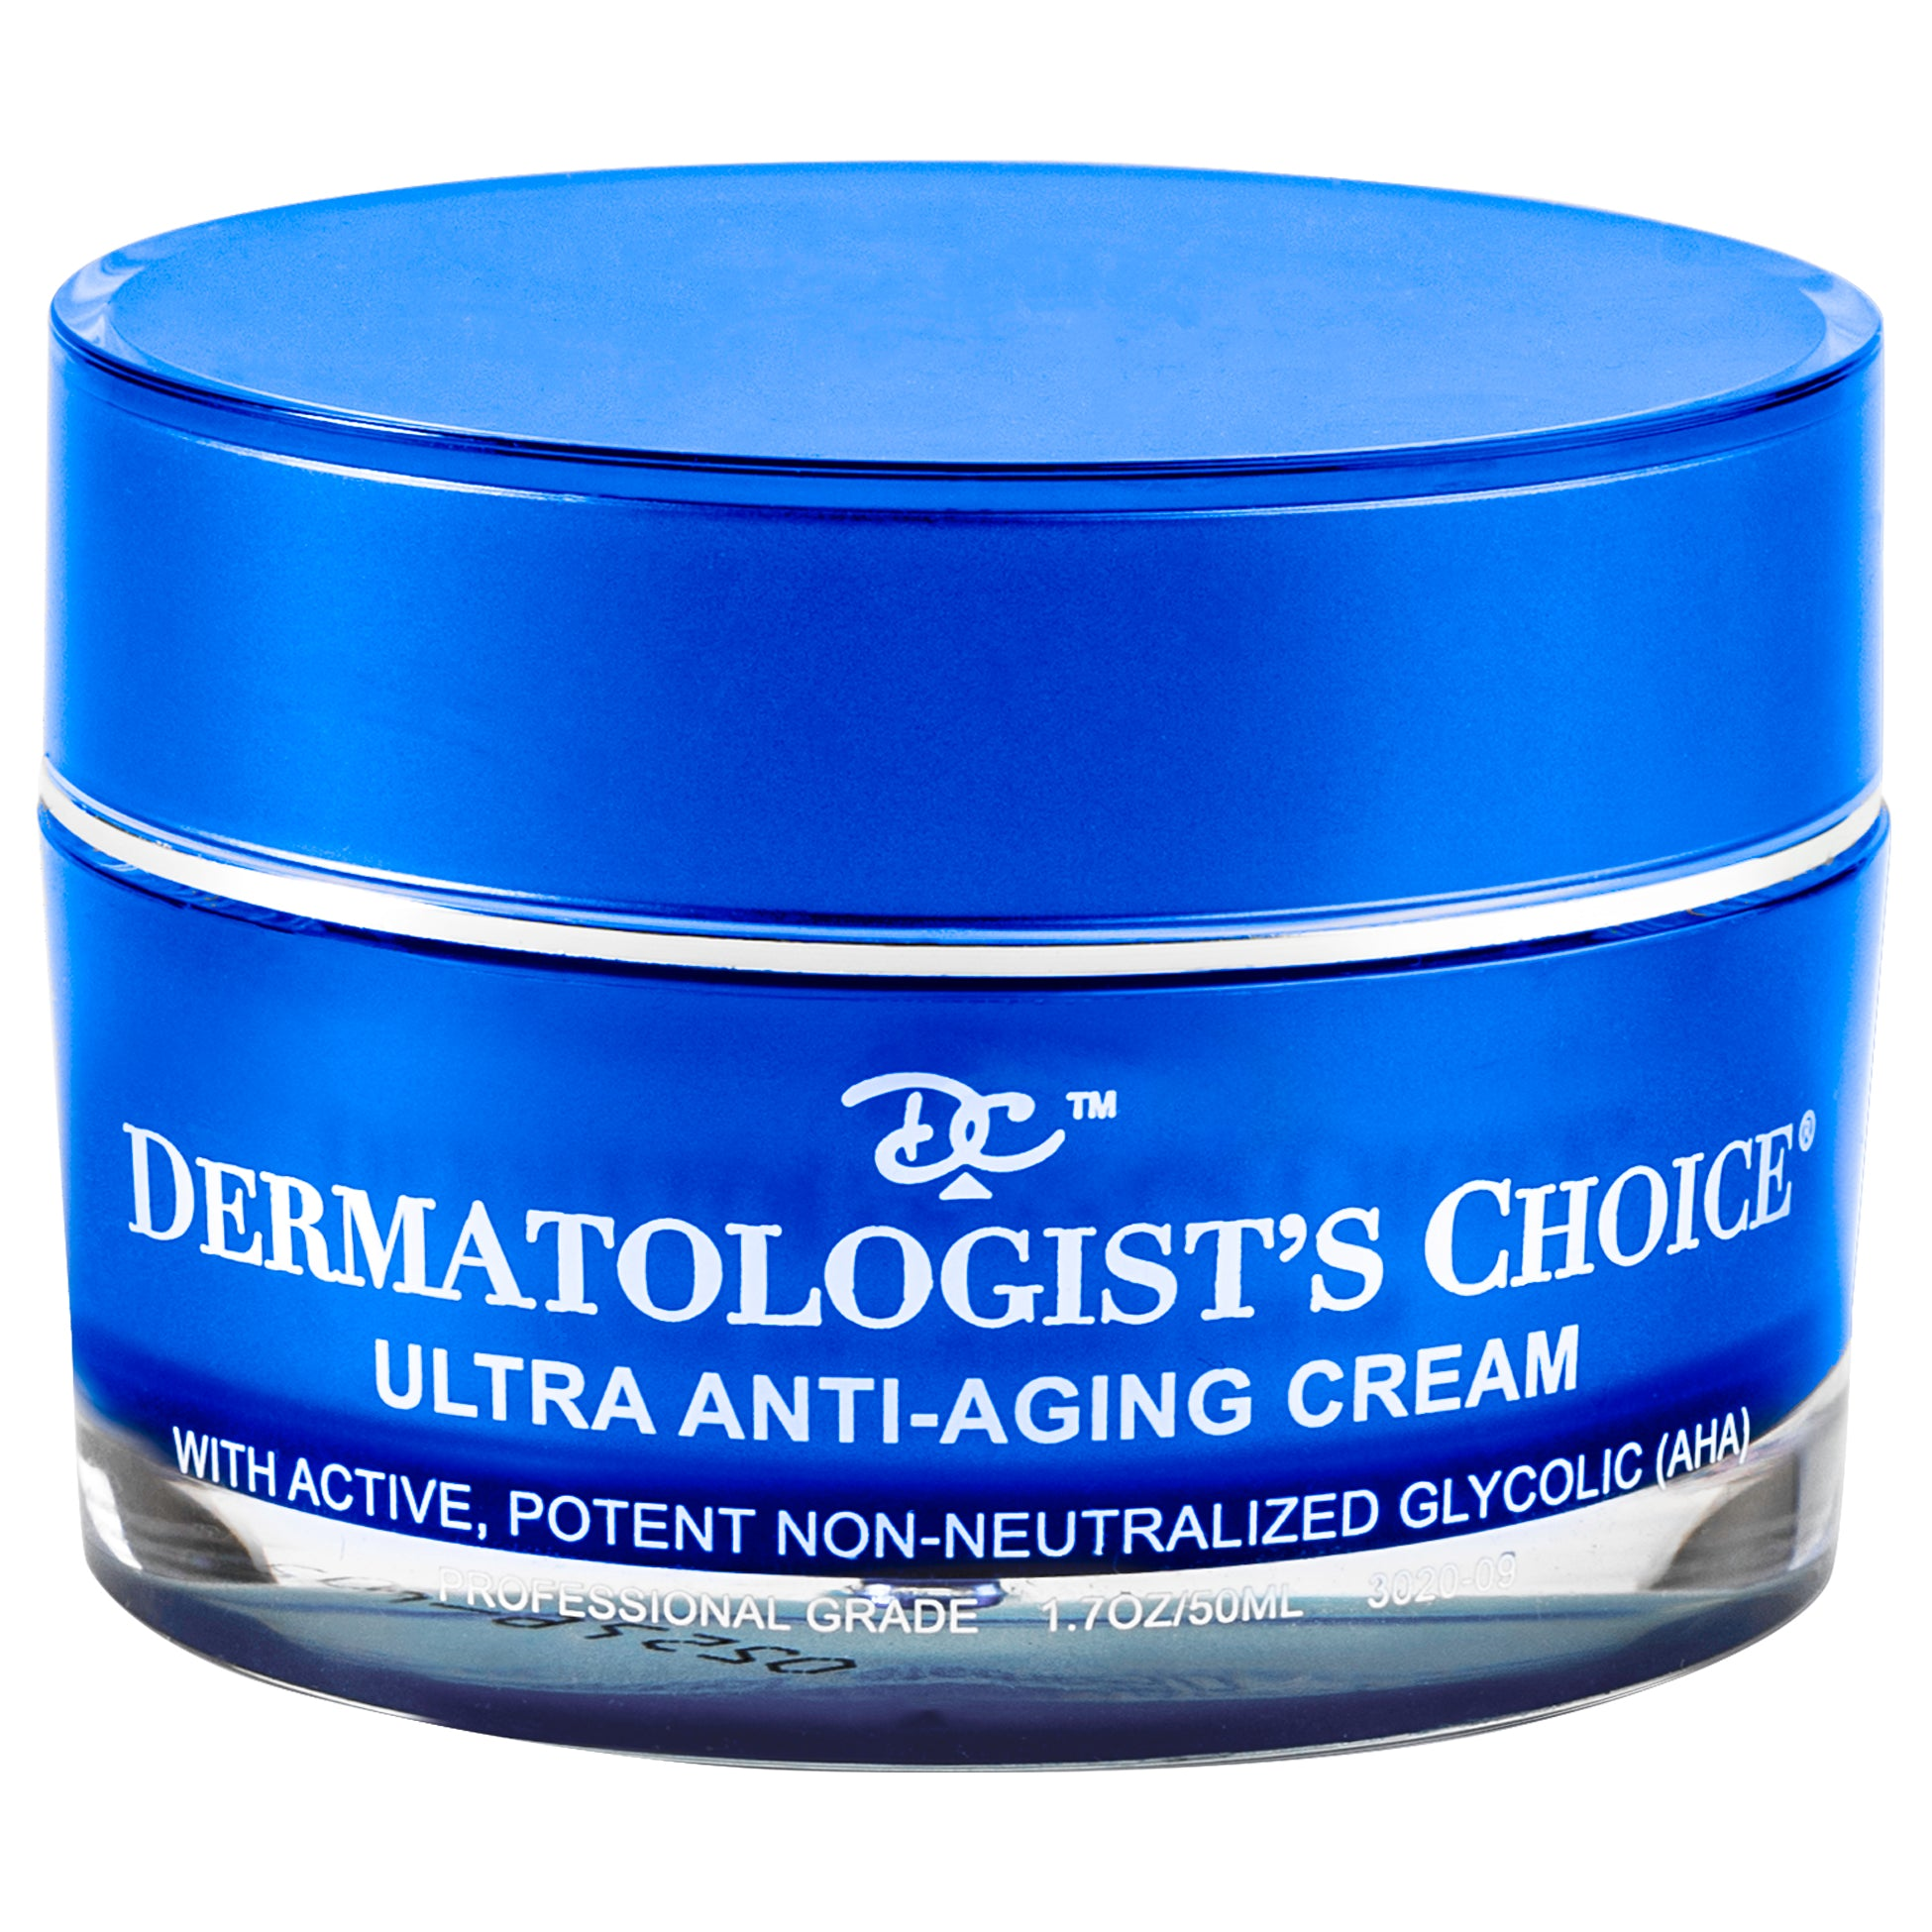 Ultra Anti-Aging Cream 15% non-neutralized glycolic